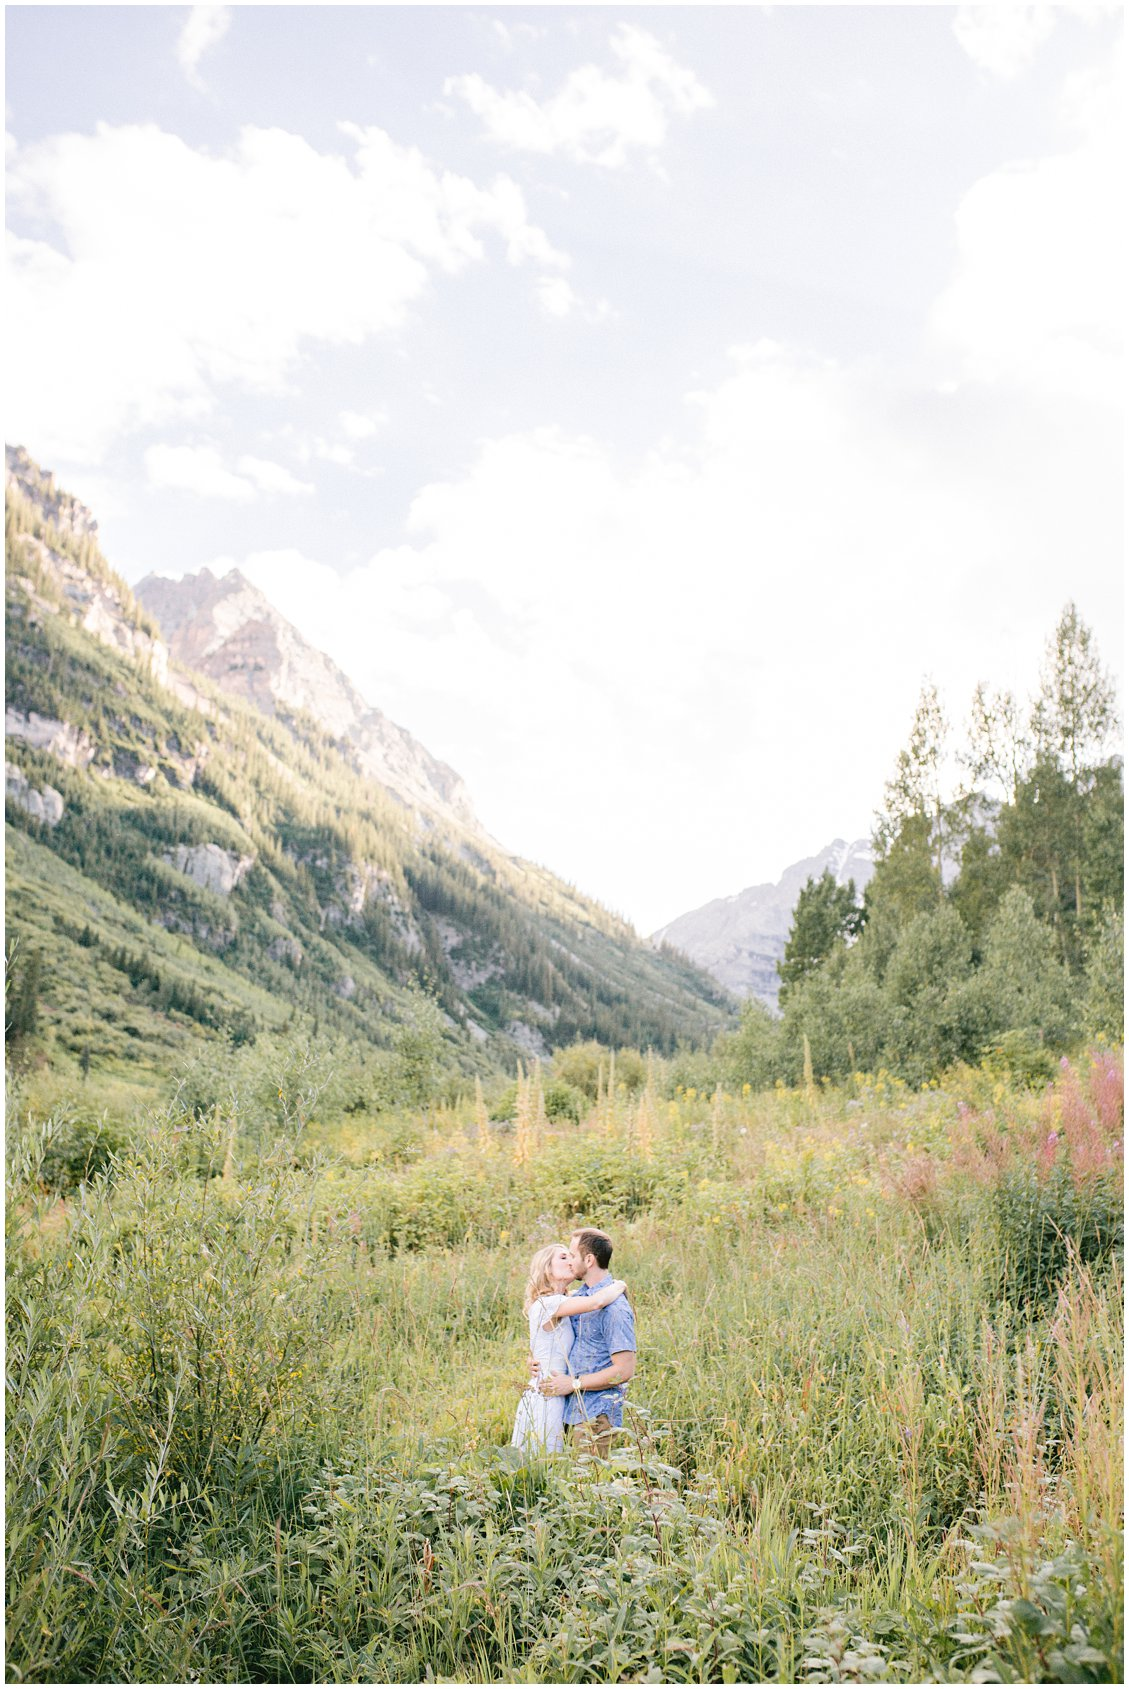 A bohemian and adventurous destination couples anniversary photography session at the Maroon Bells national park in Aspen Colorado by husband and wife team Pattengale Photography